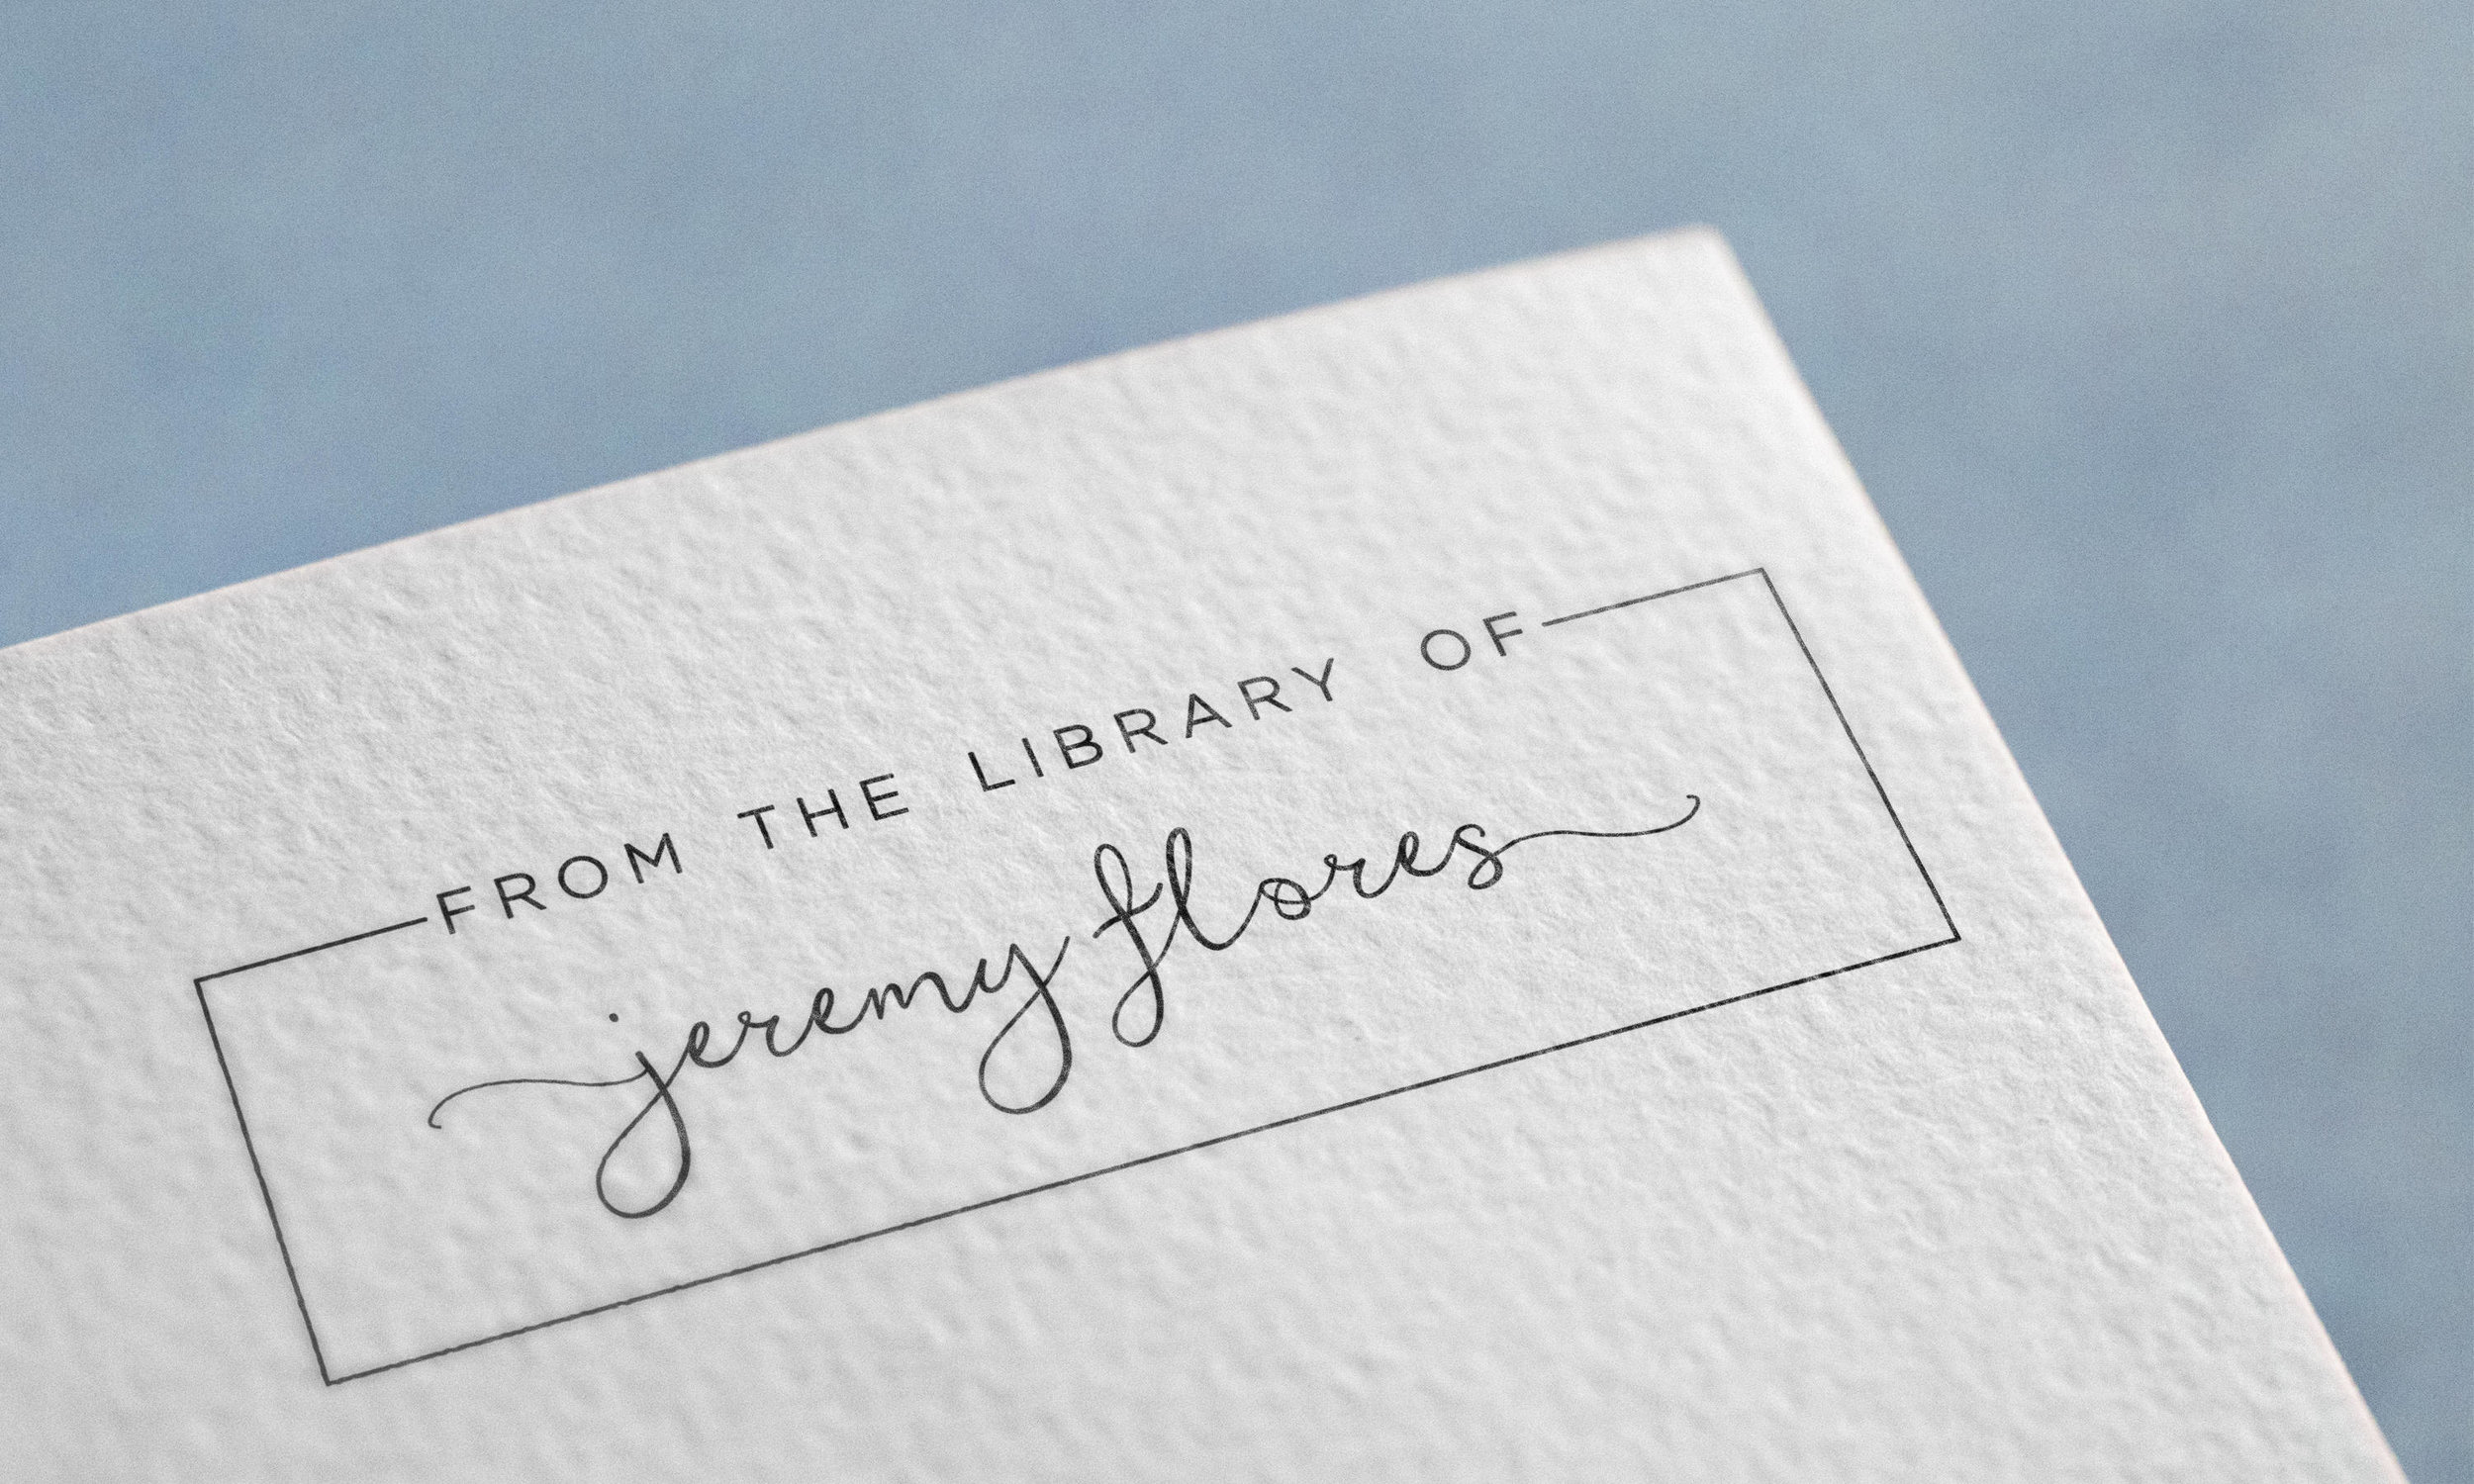 from the library stamp.jpg